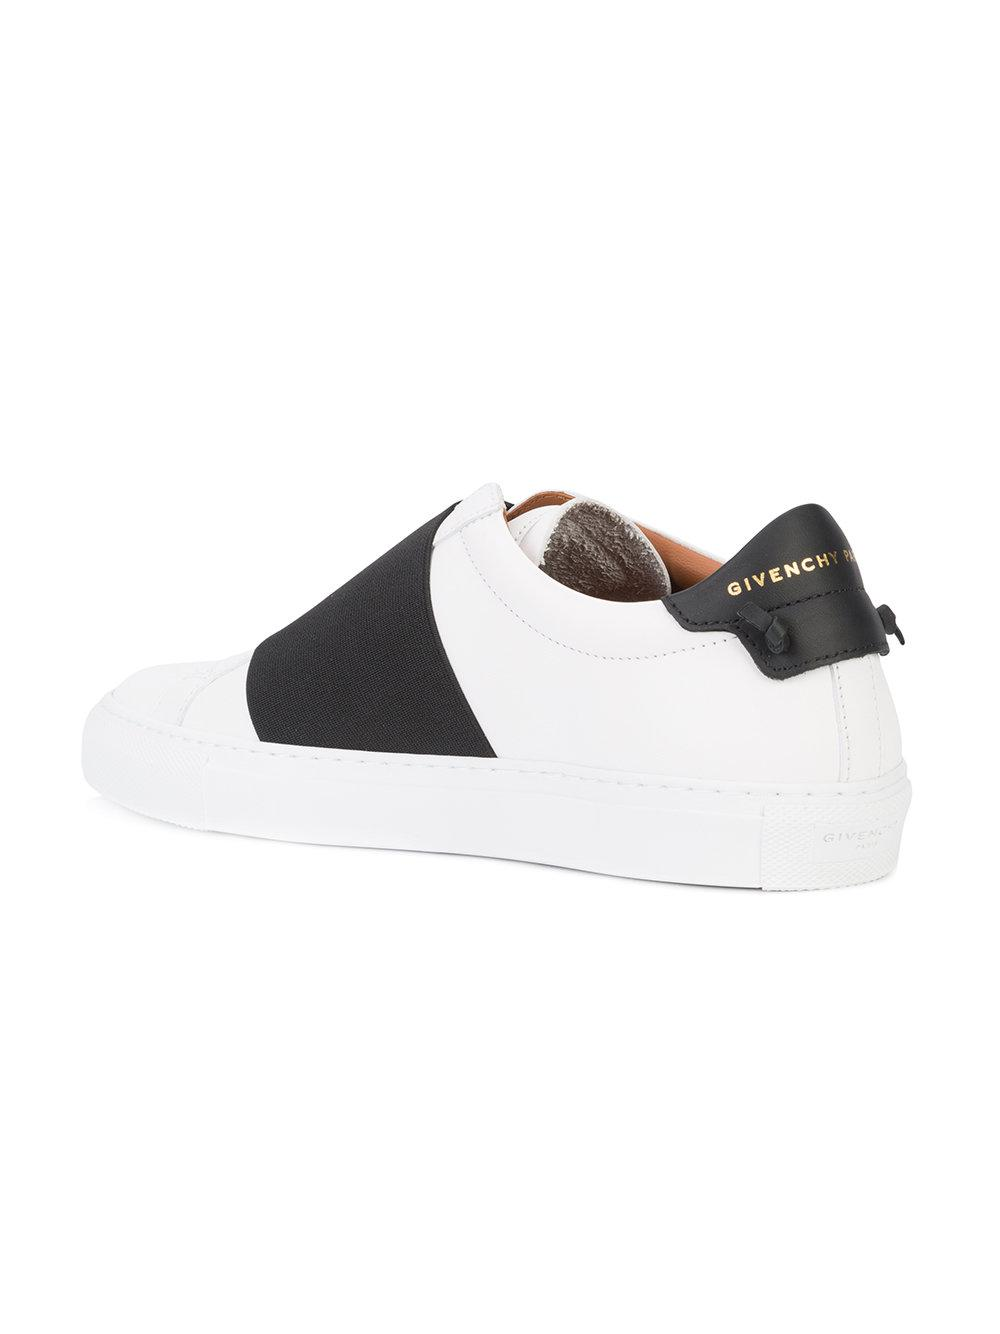 release date: quite nice a few days away Givenchy Leather Elastic Skate Sneakers in White - Lyst